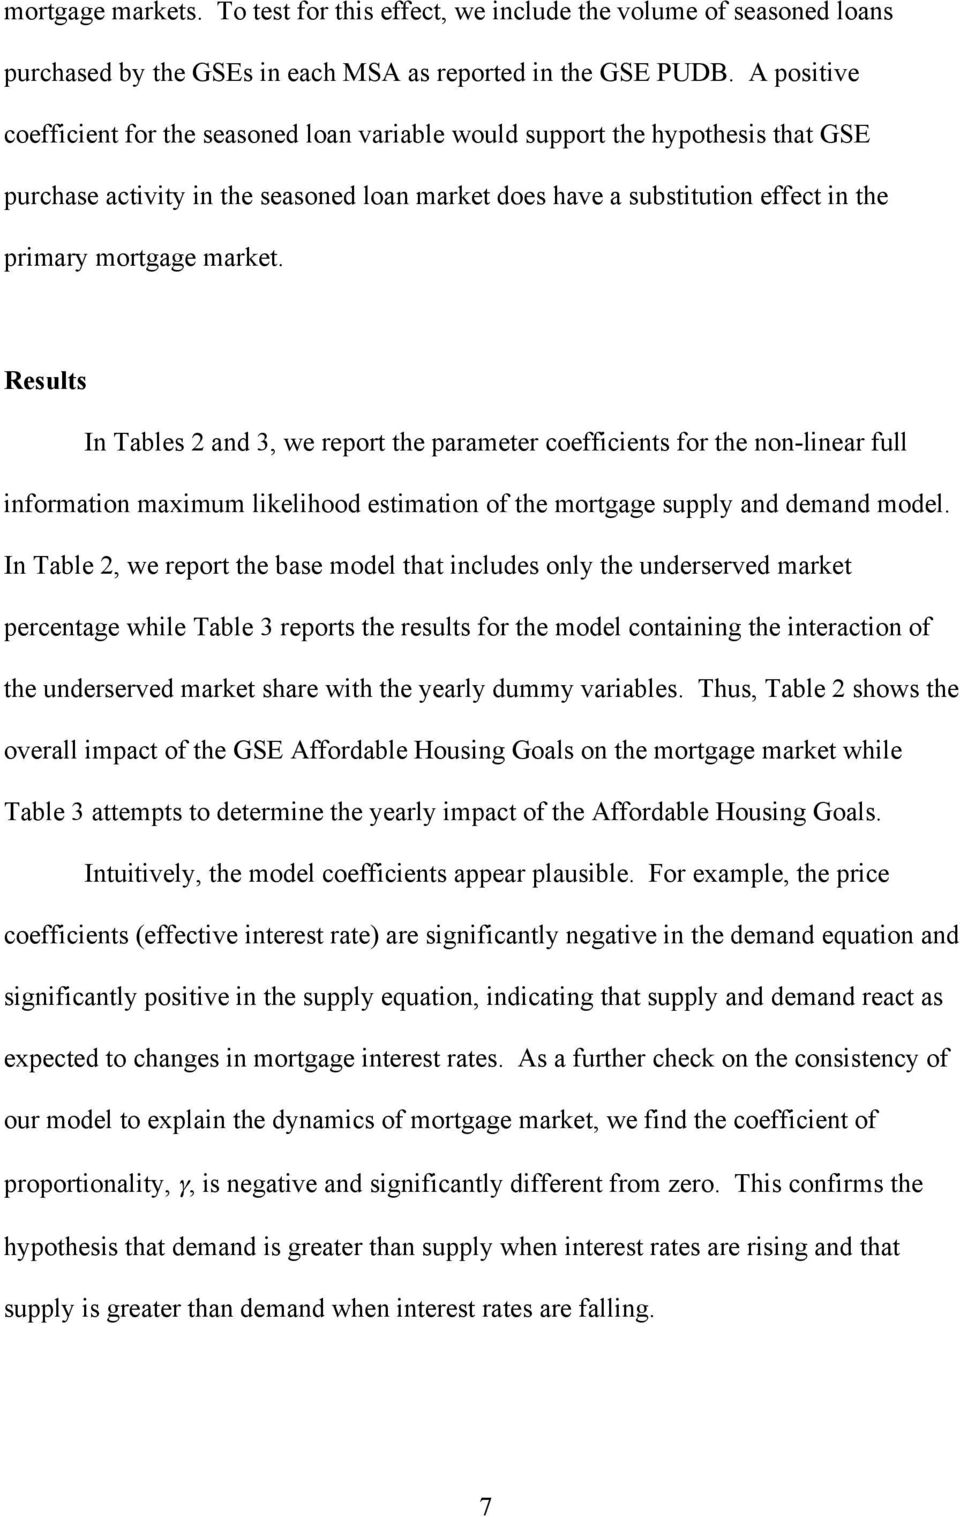 market. Results In Tables 2 and 3, we report the parameter coefficients for the non-linear full information maximum likelihood estimation of the mortgage supply and demand model.